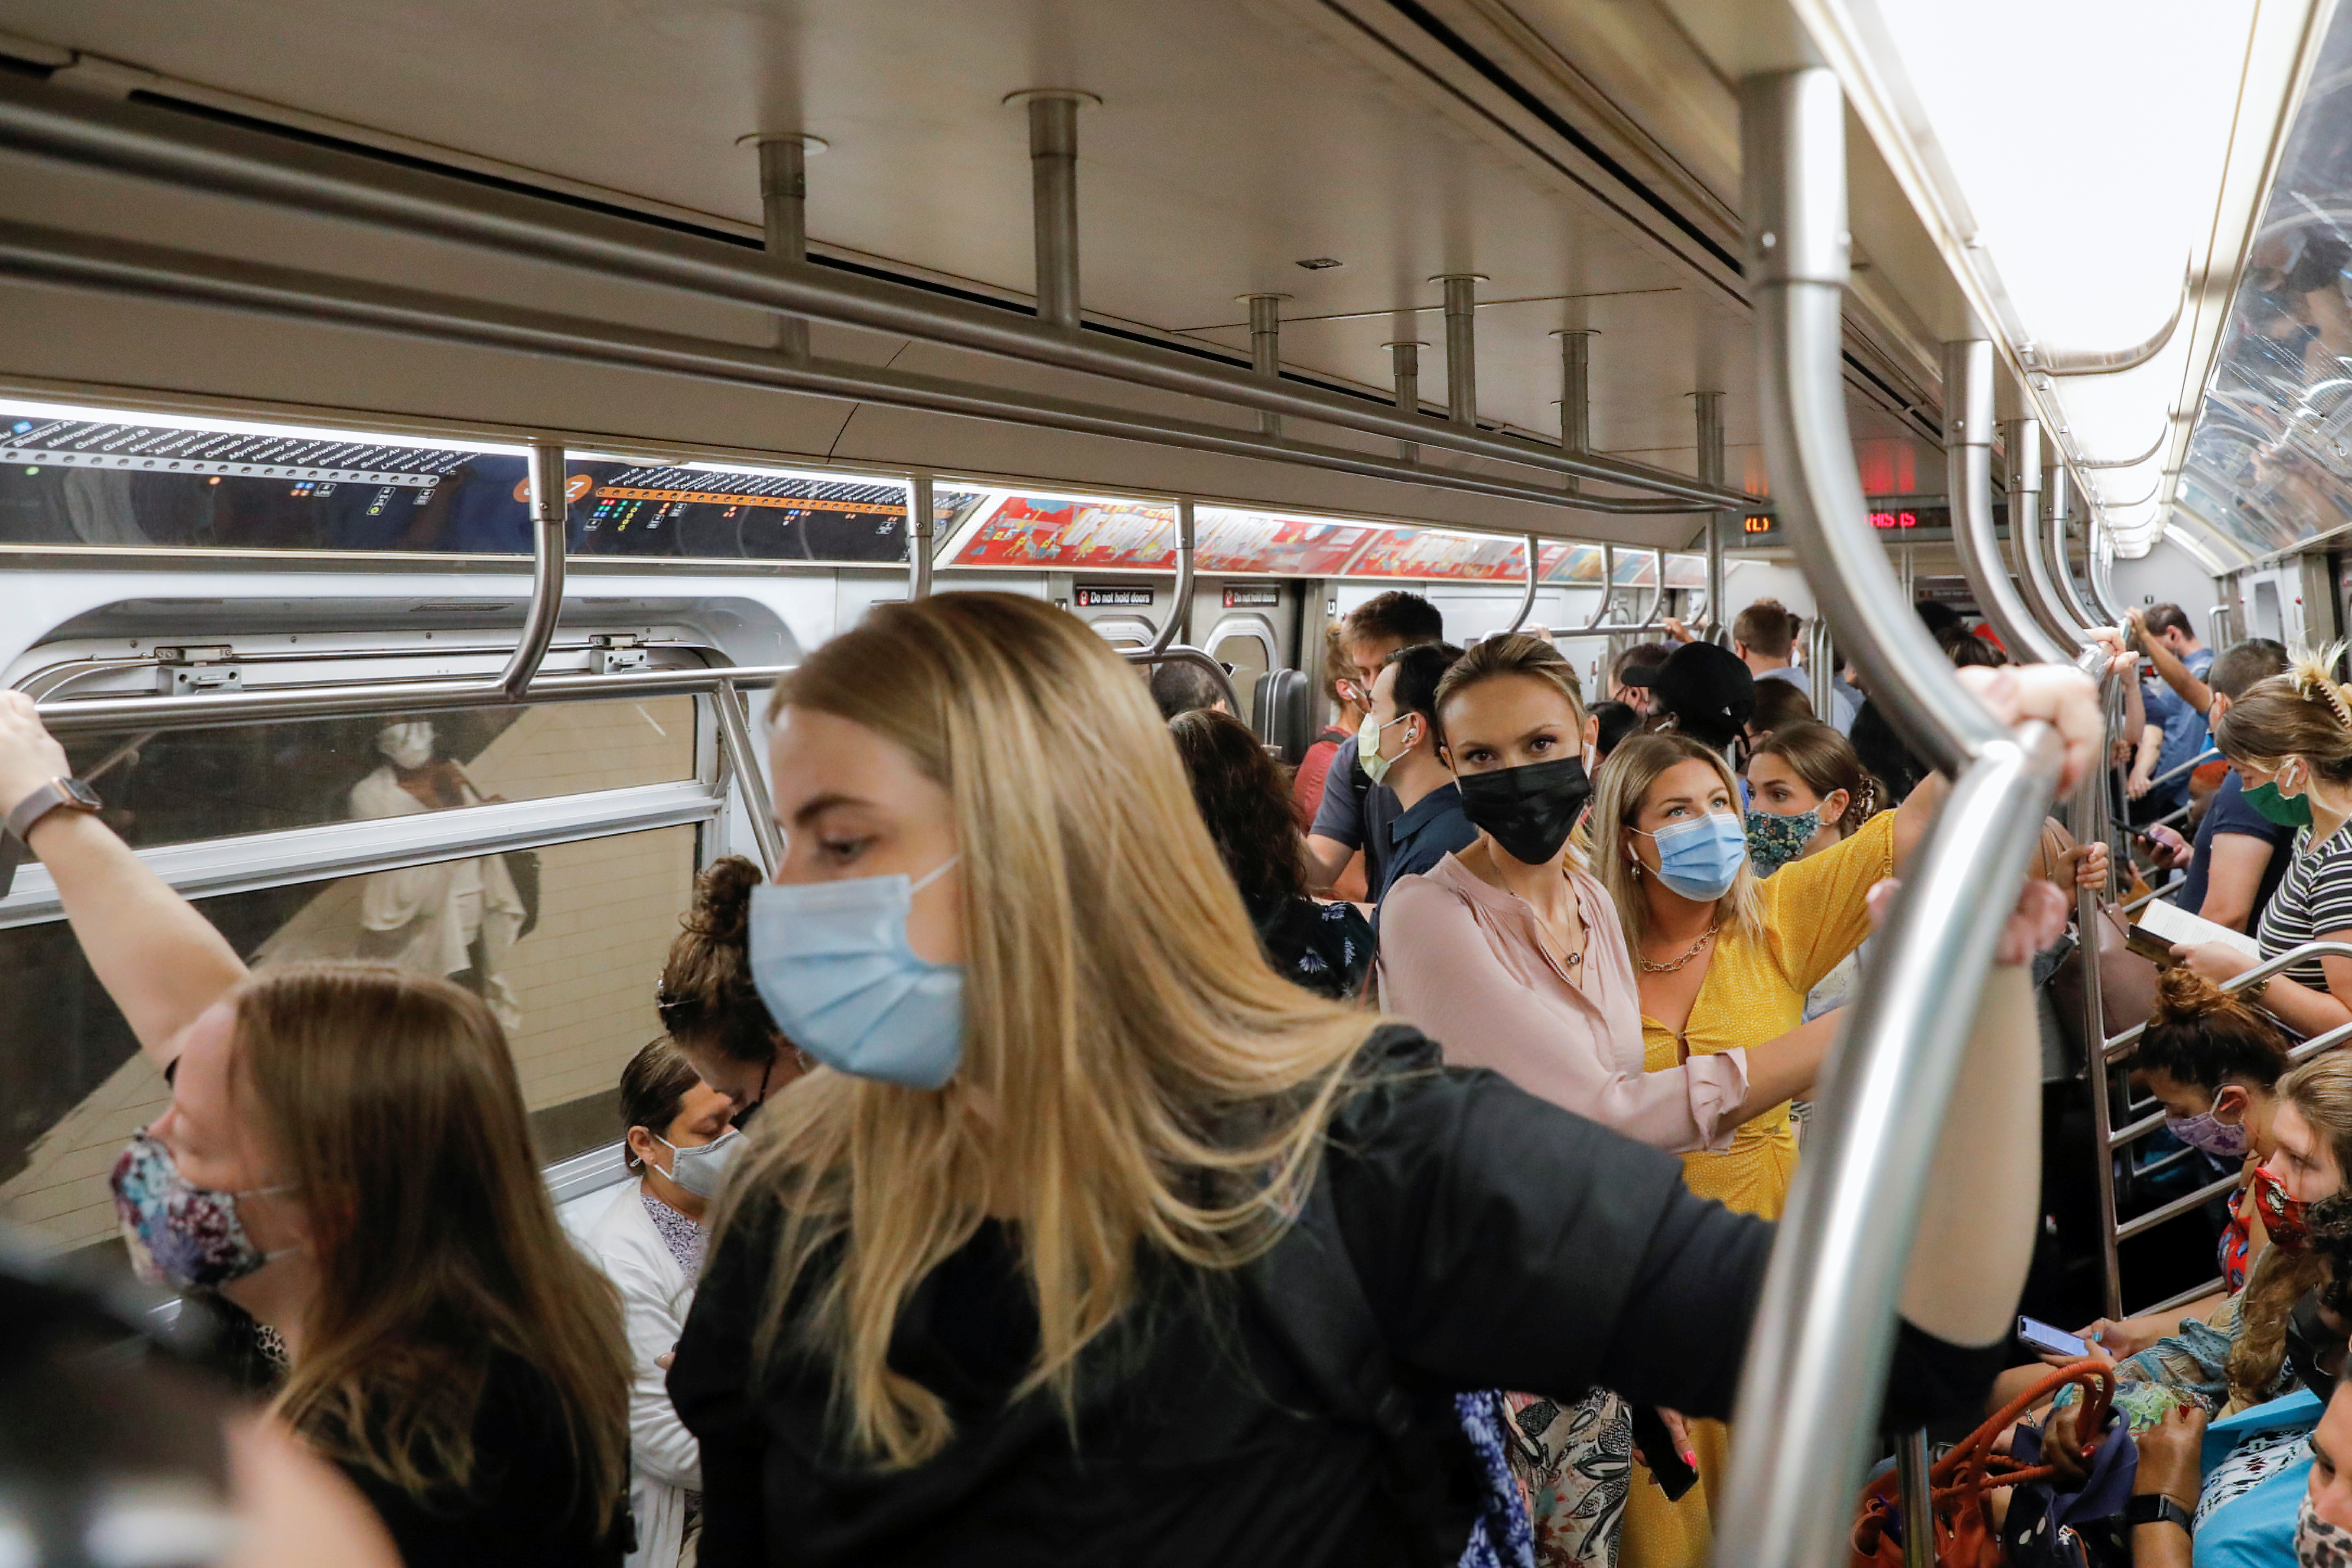 People wear masks while riding on the subway as cases of the infectious coronavirus Delta variant continue to rise in New York City, New York, U.S., August 2, 2021. REUTERS/Andrew Kelly